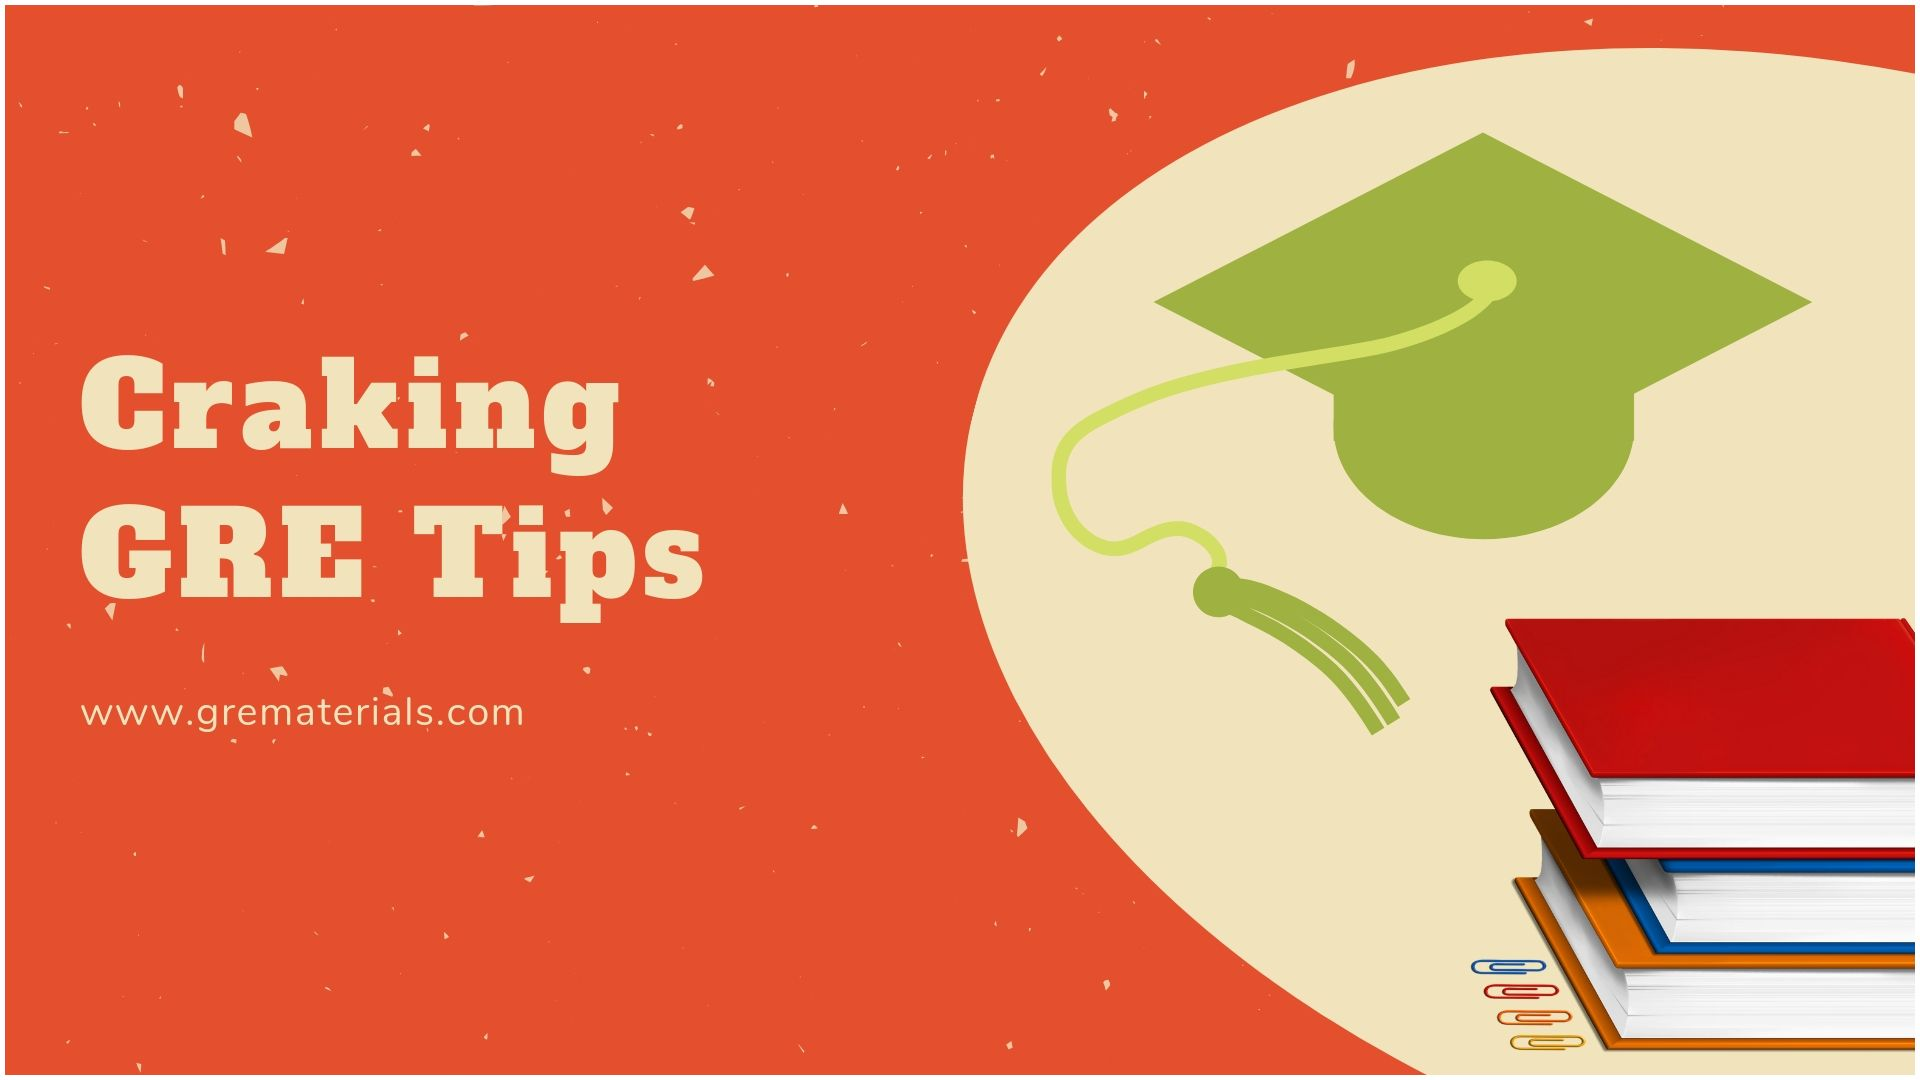 Cracking GRE Tips to Score 330 on the GRE